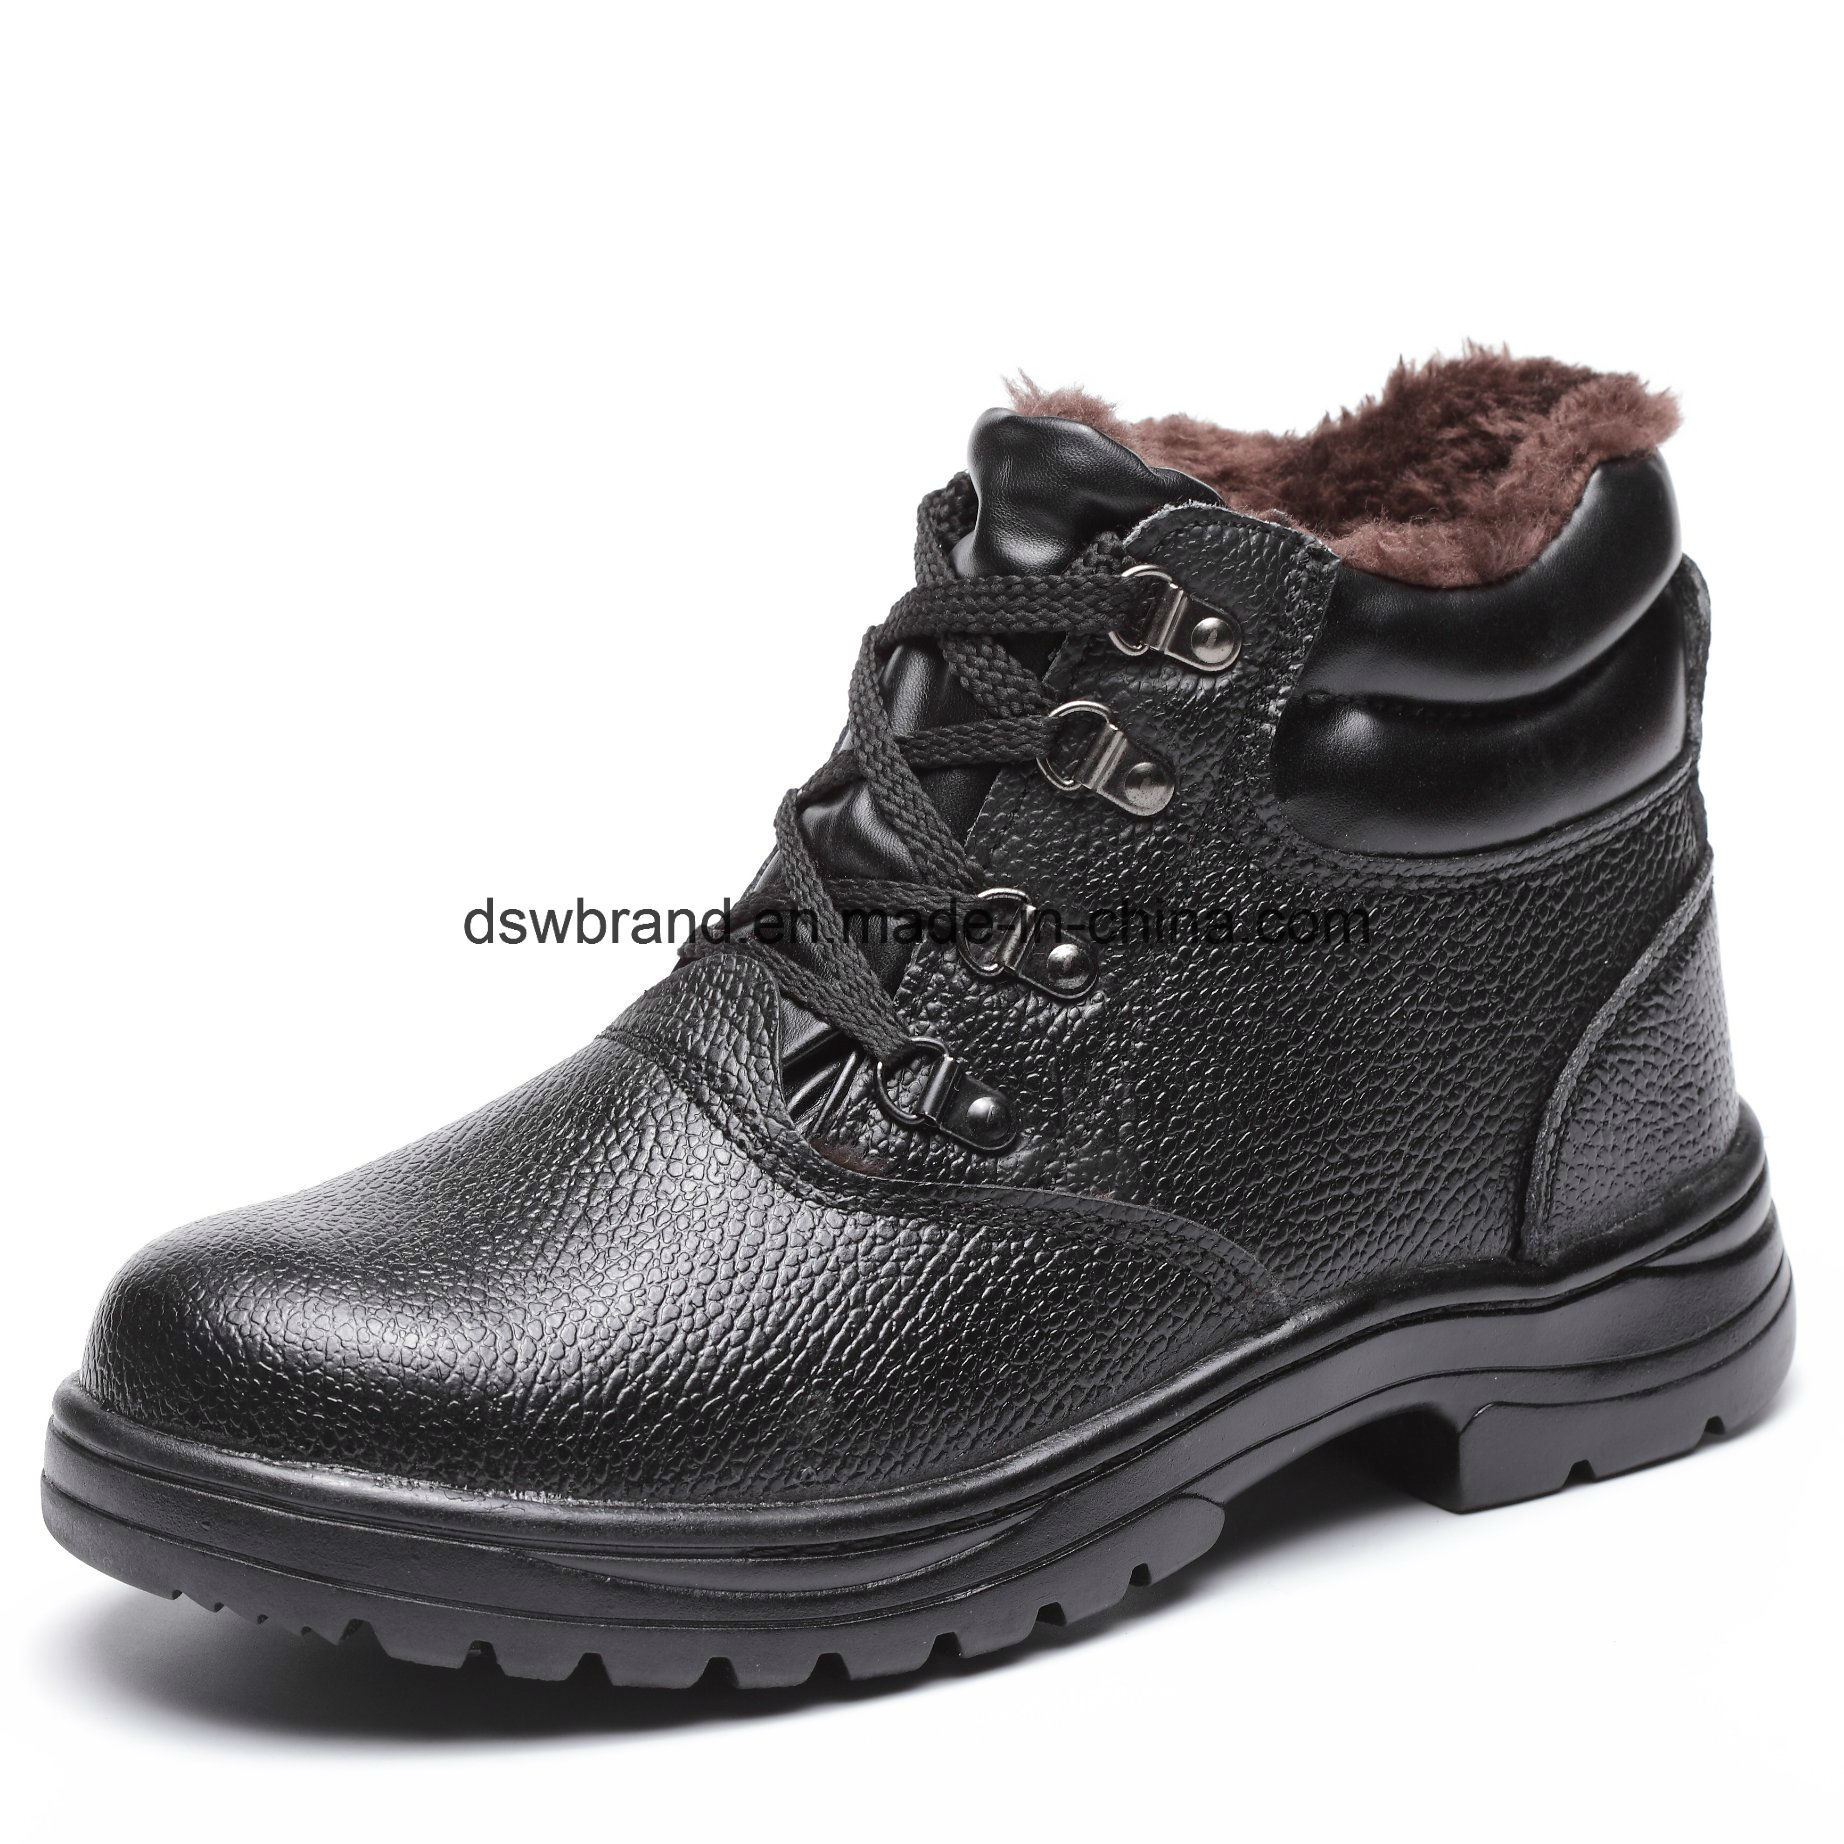 China Safety Shoe and Safety Footwear price